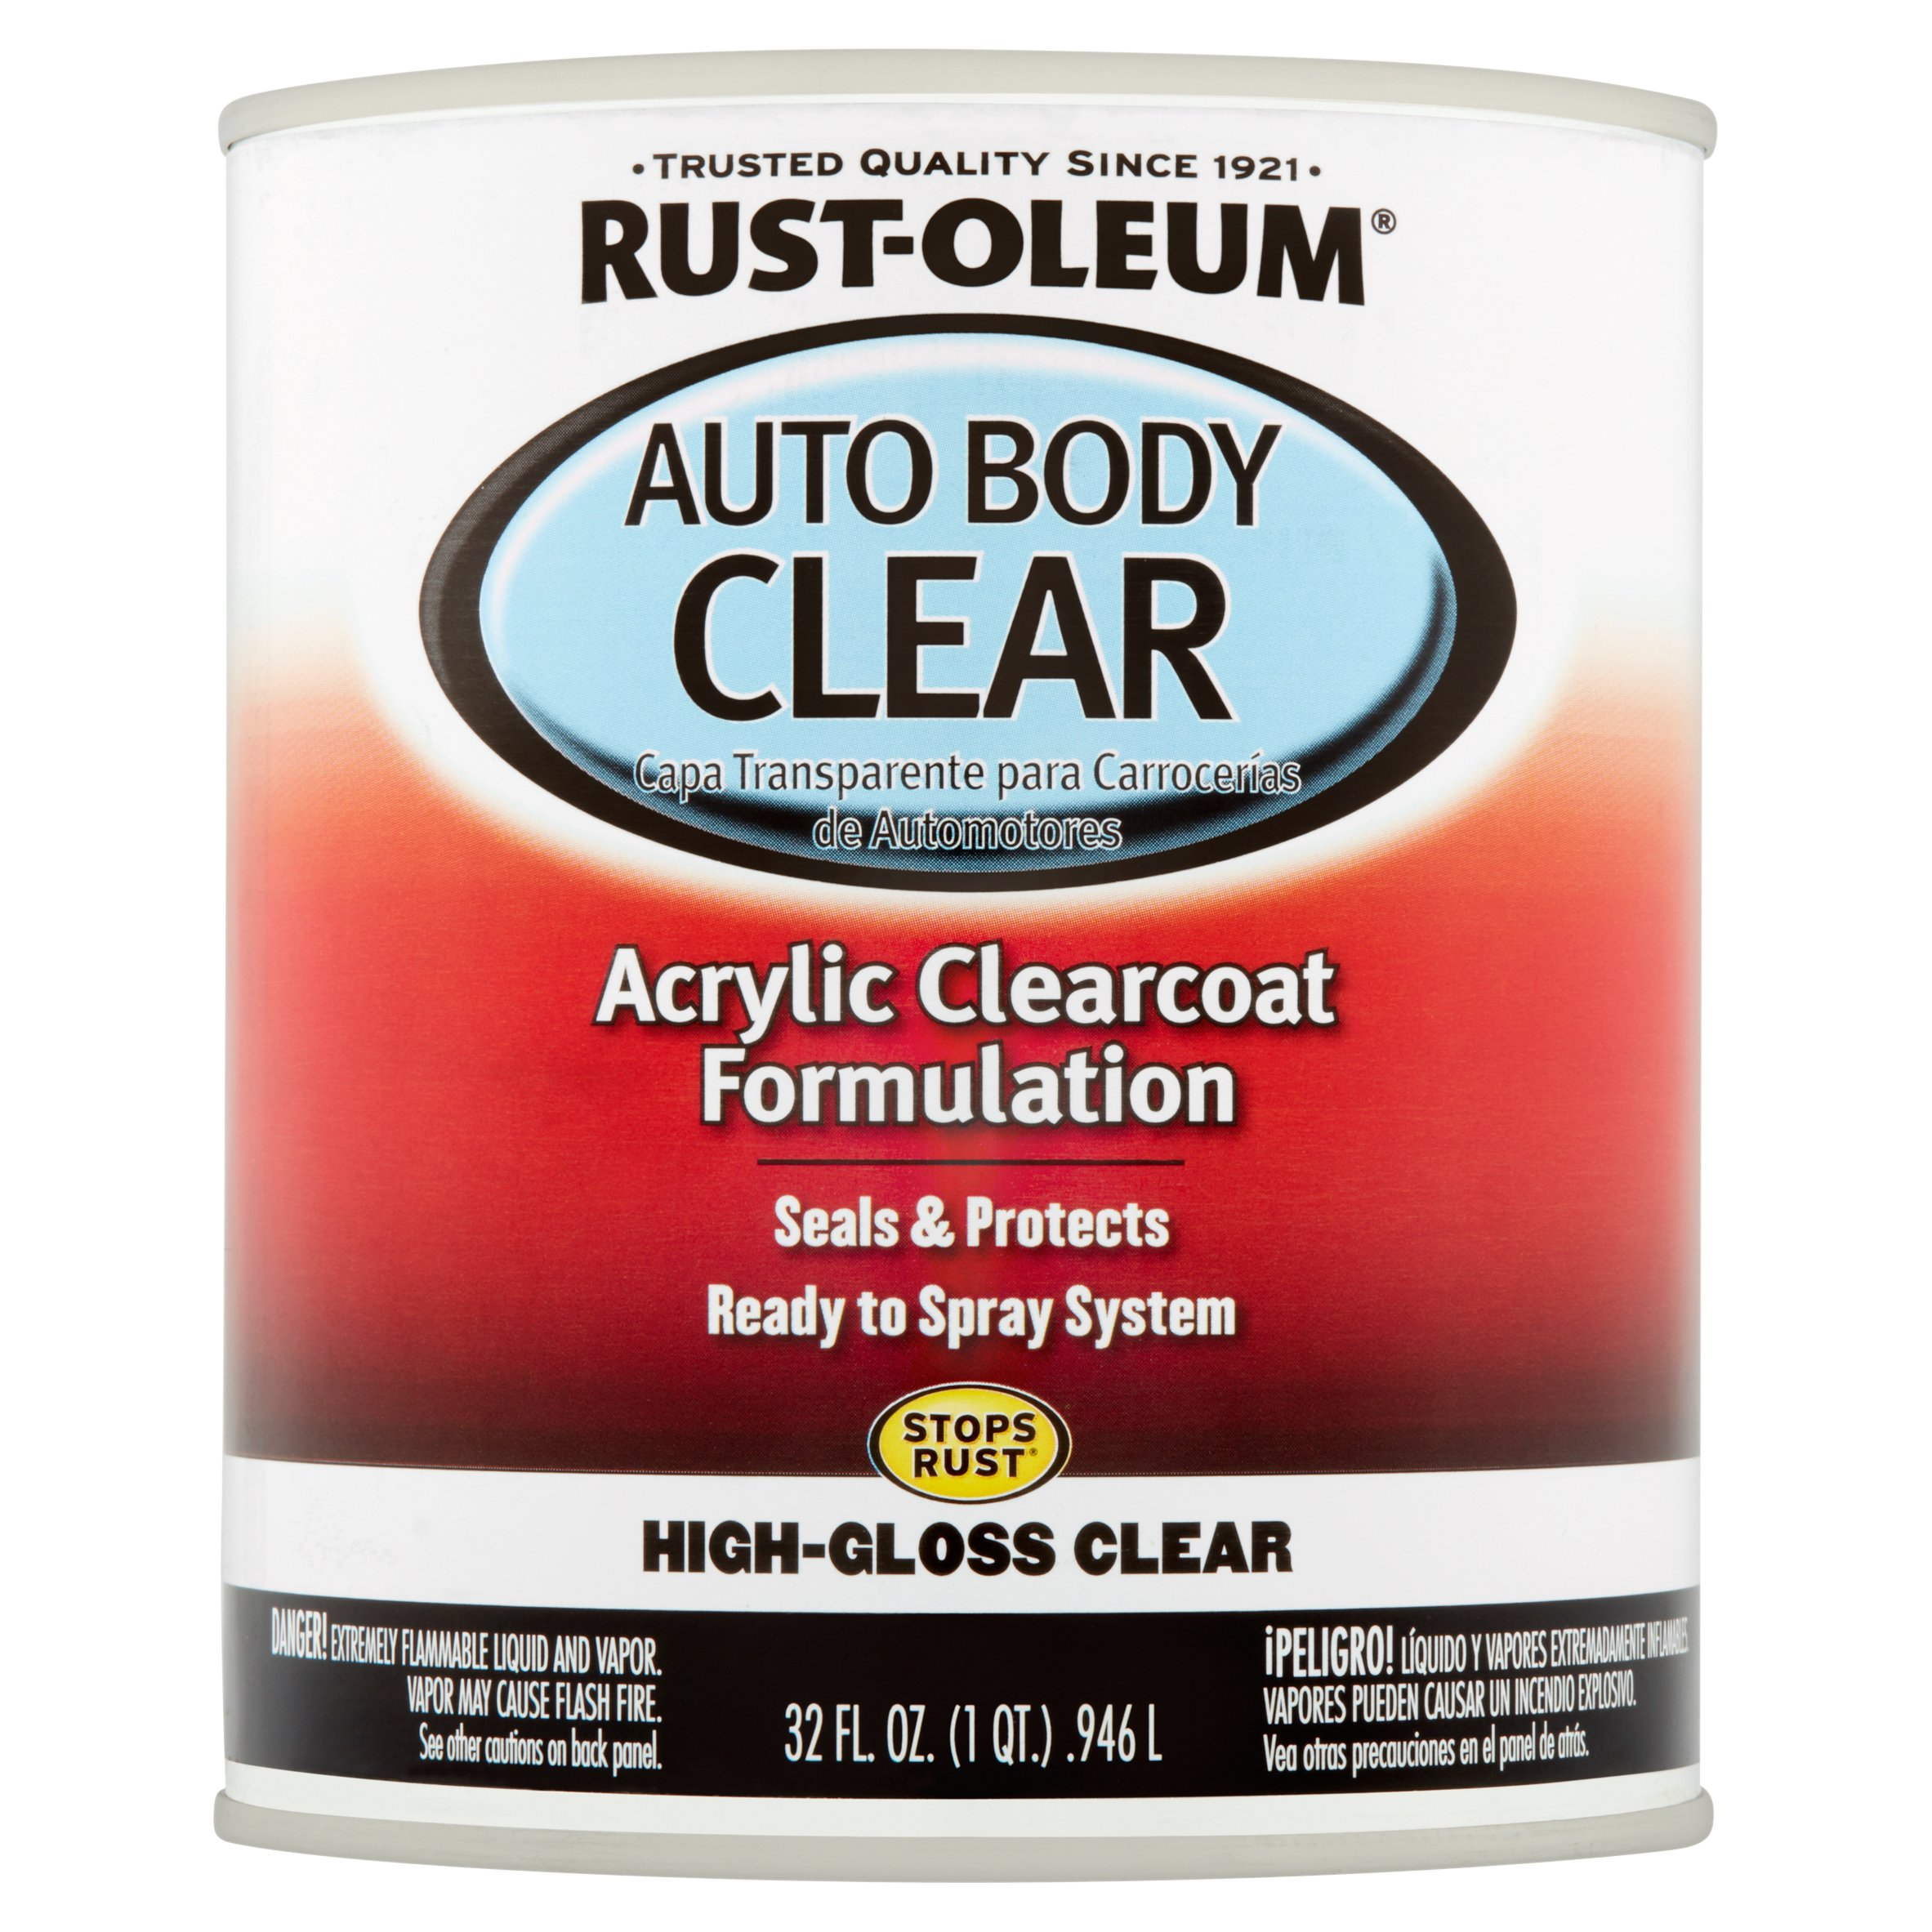 Rust-Oleum Auto Body Clear Acrylic Clearcoat Formulation High-Gloss Clear, 32 fl oz